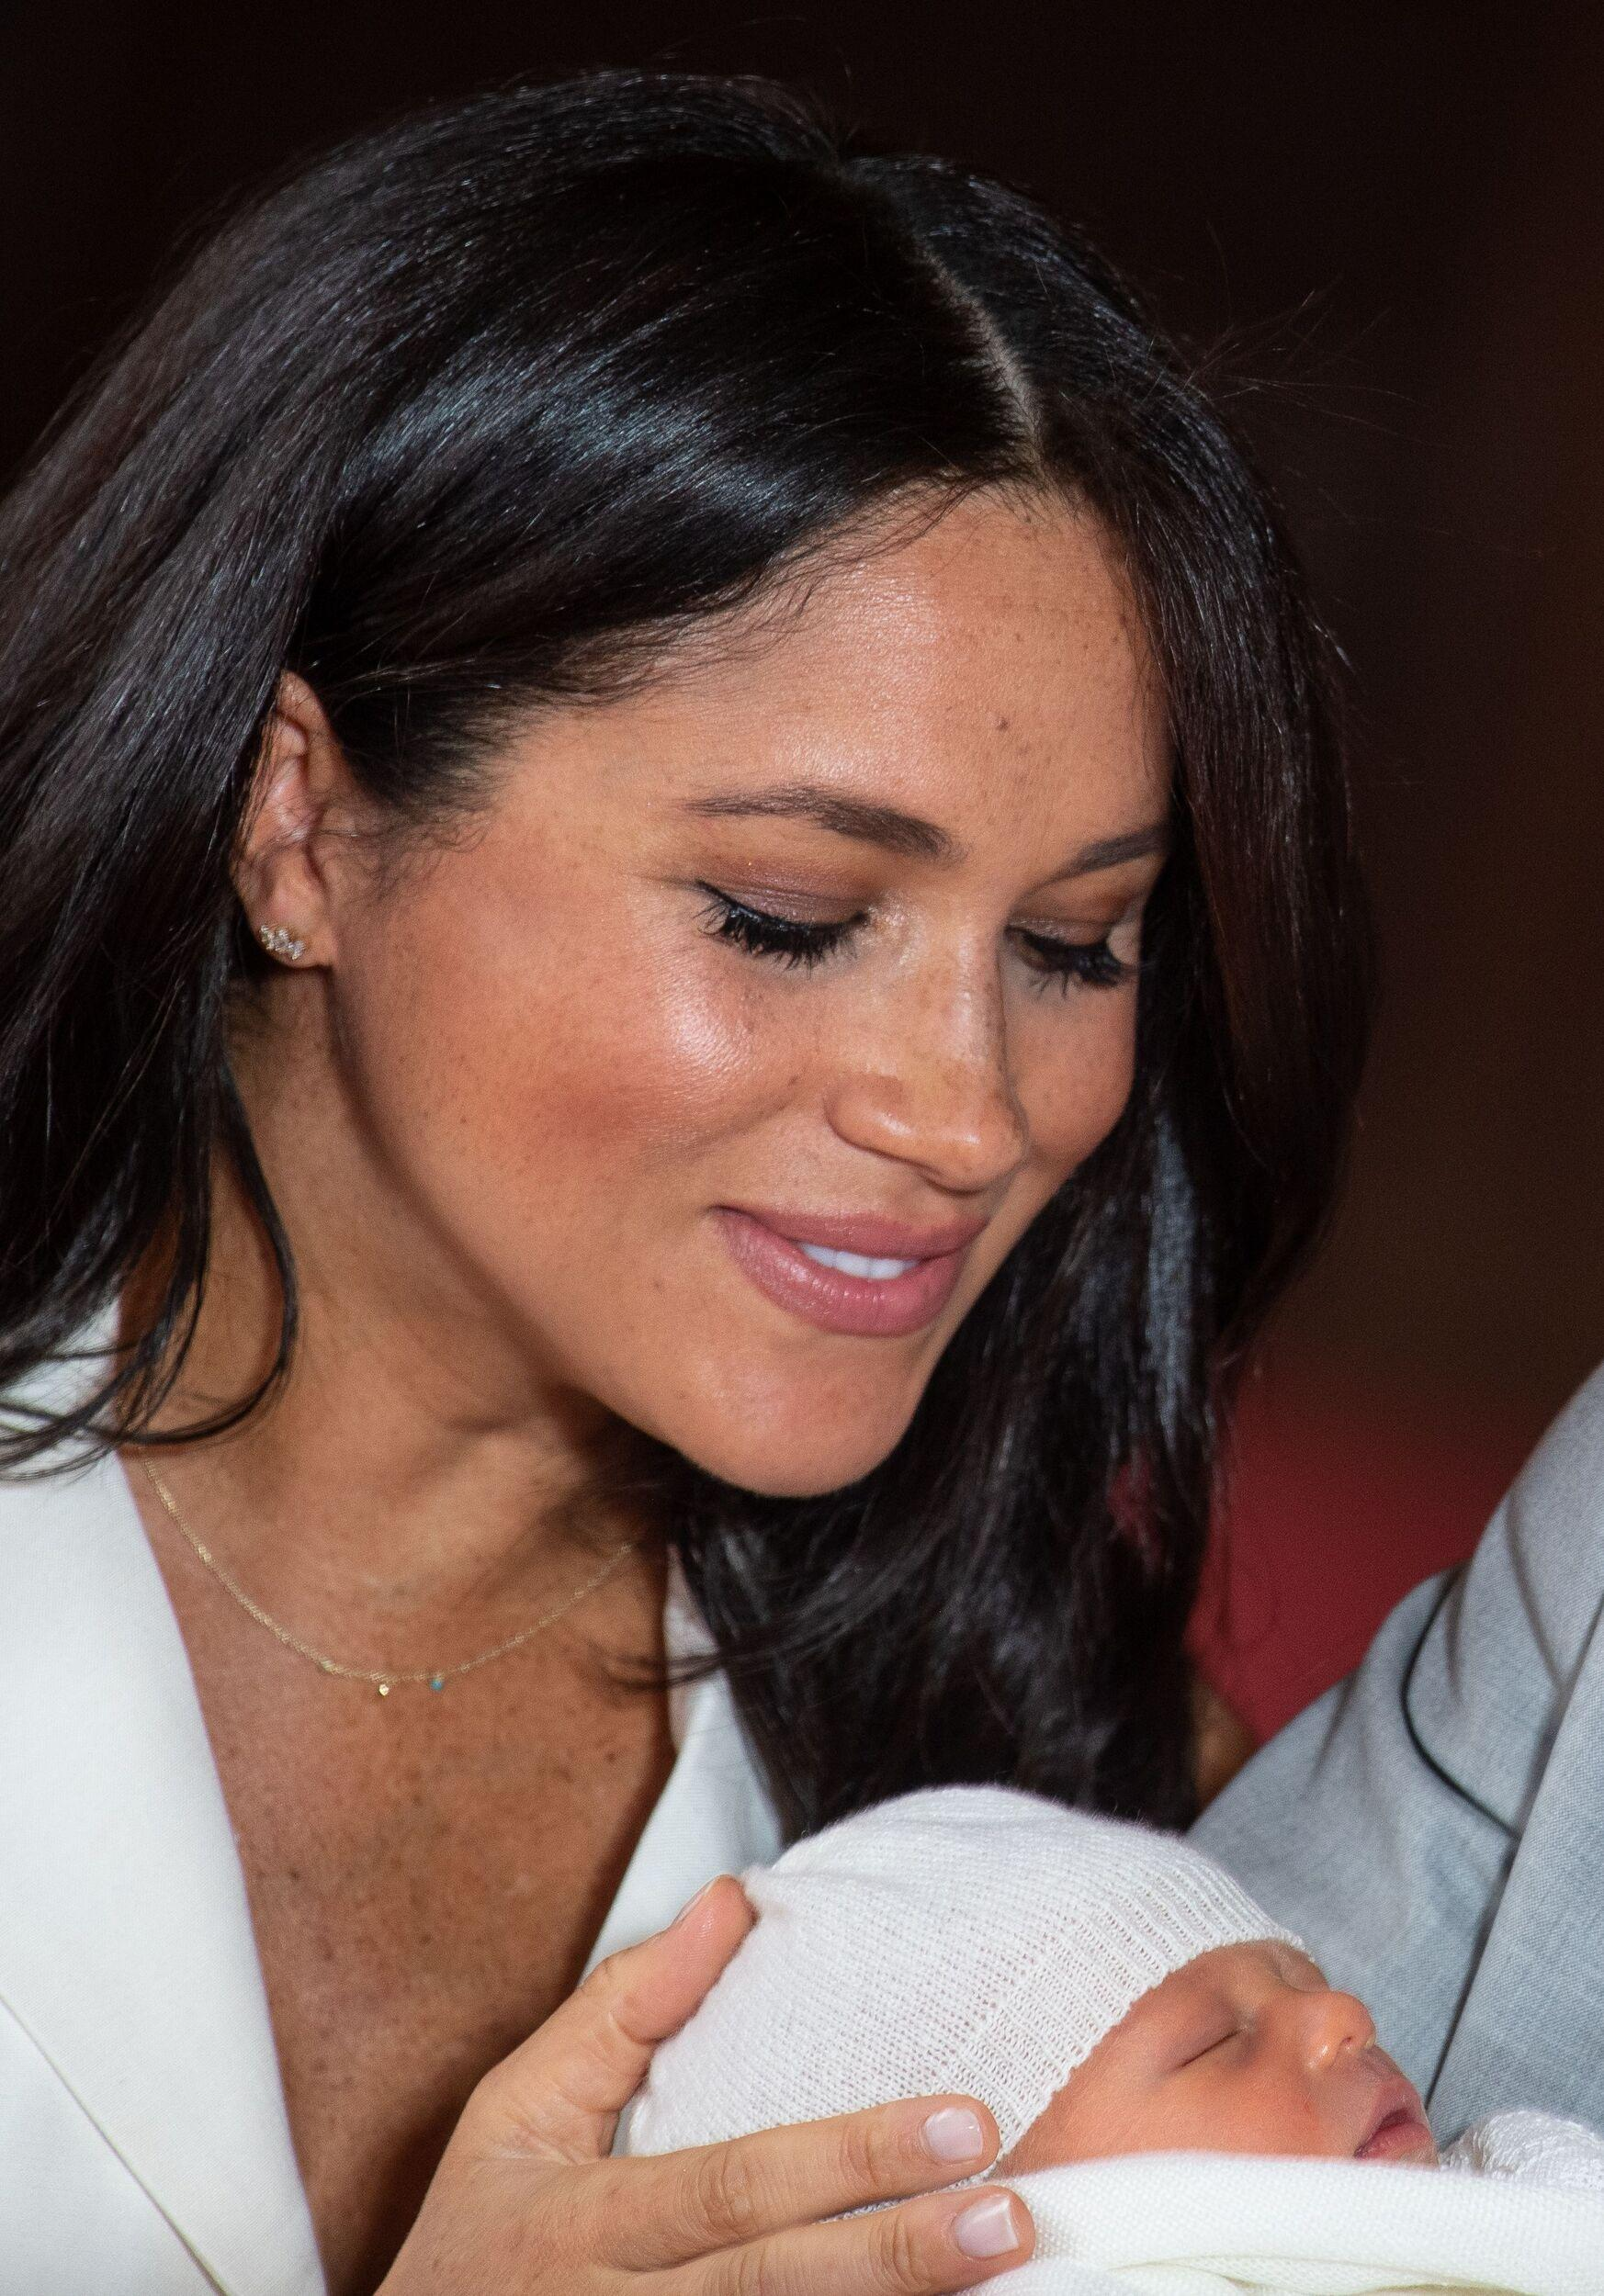 Meghan, Duchess of Sussex, places her hand on the head of her newborn baby boy as she and her husband Britain's Prince Harry, Duke of Sussex, pose for a photo in St George's Hall at Windsor Castle in Windsor, west of London on May 8, 2019. (Photo by Dominic Lipinski / POOL / AFP) (Photo credit should read DOMINIC LIPINSKI/AFP/Getty Images)